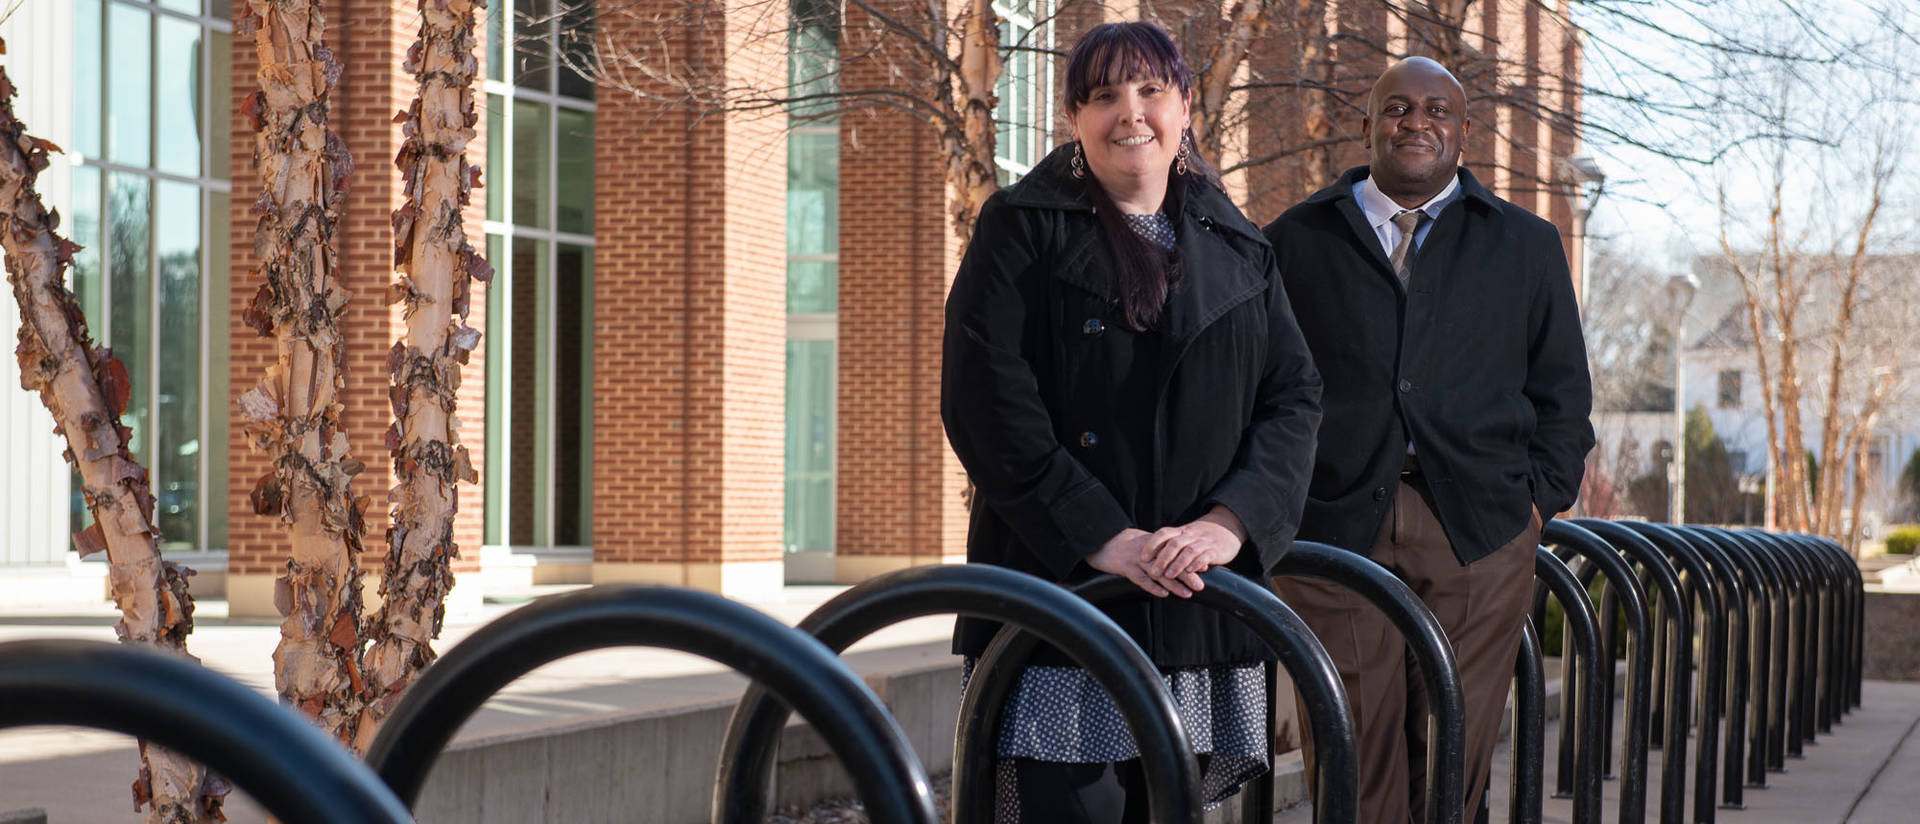 Dr. Heather Ann Moody, associate professor of American Indian studies, and Dr. Roderick Jones, assistant professor of special education and inclusive practices, are co-chairs of the Center for Racial and Restorative Justice's implementation team.